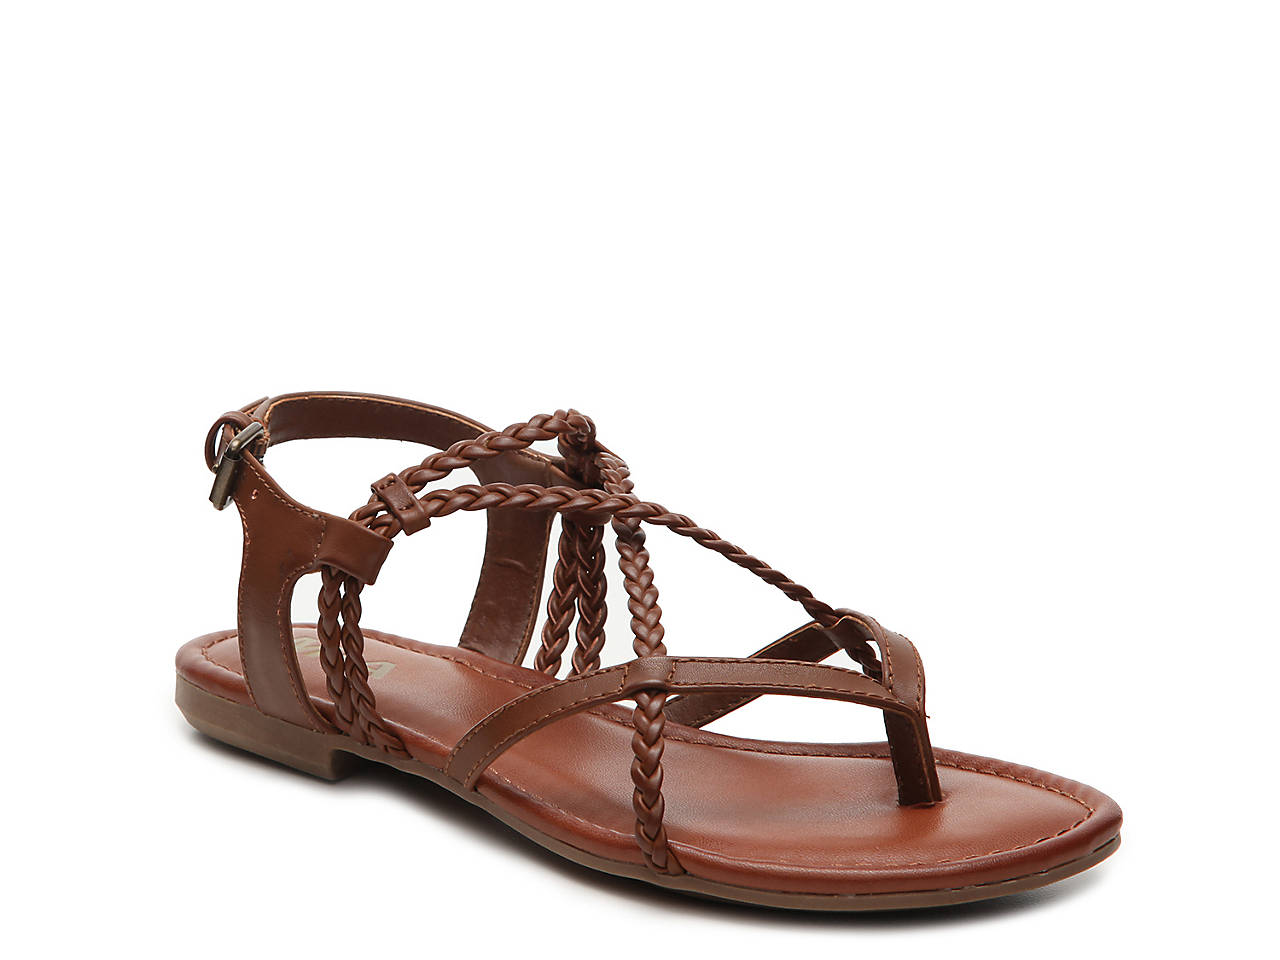 f7f88bd1d29 Mia Dannie Gladiator Sandal Women s Shoes